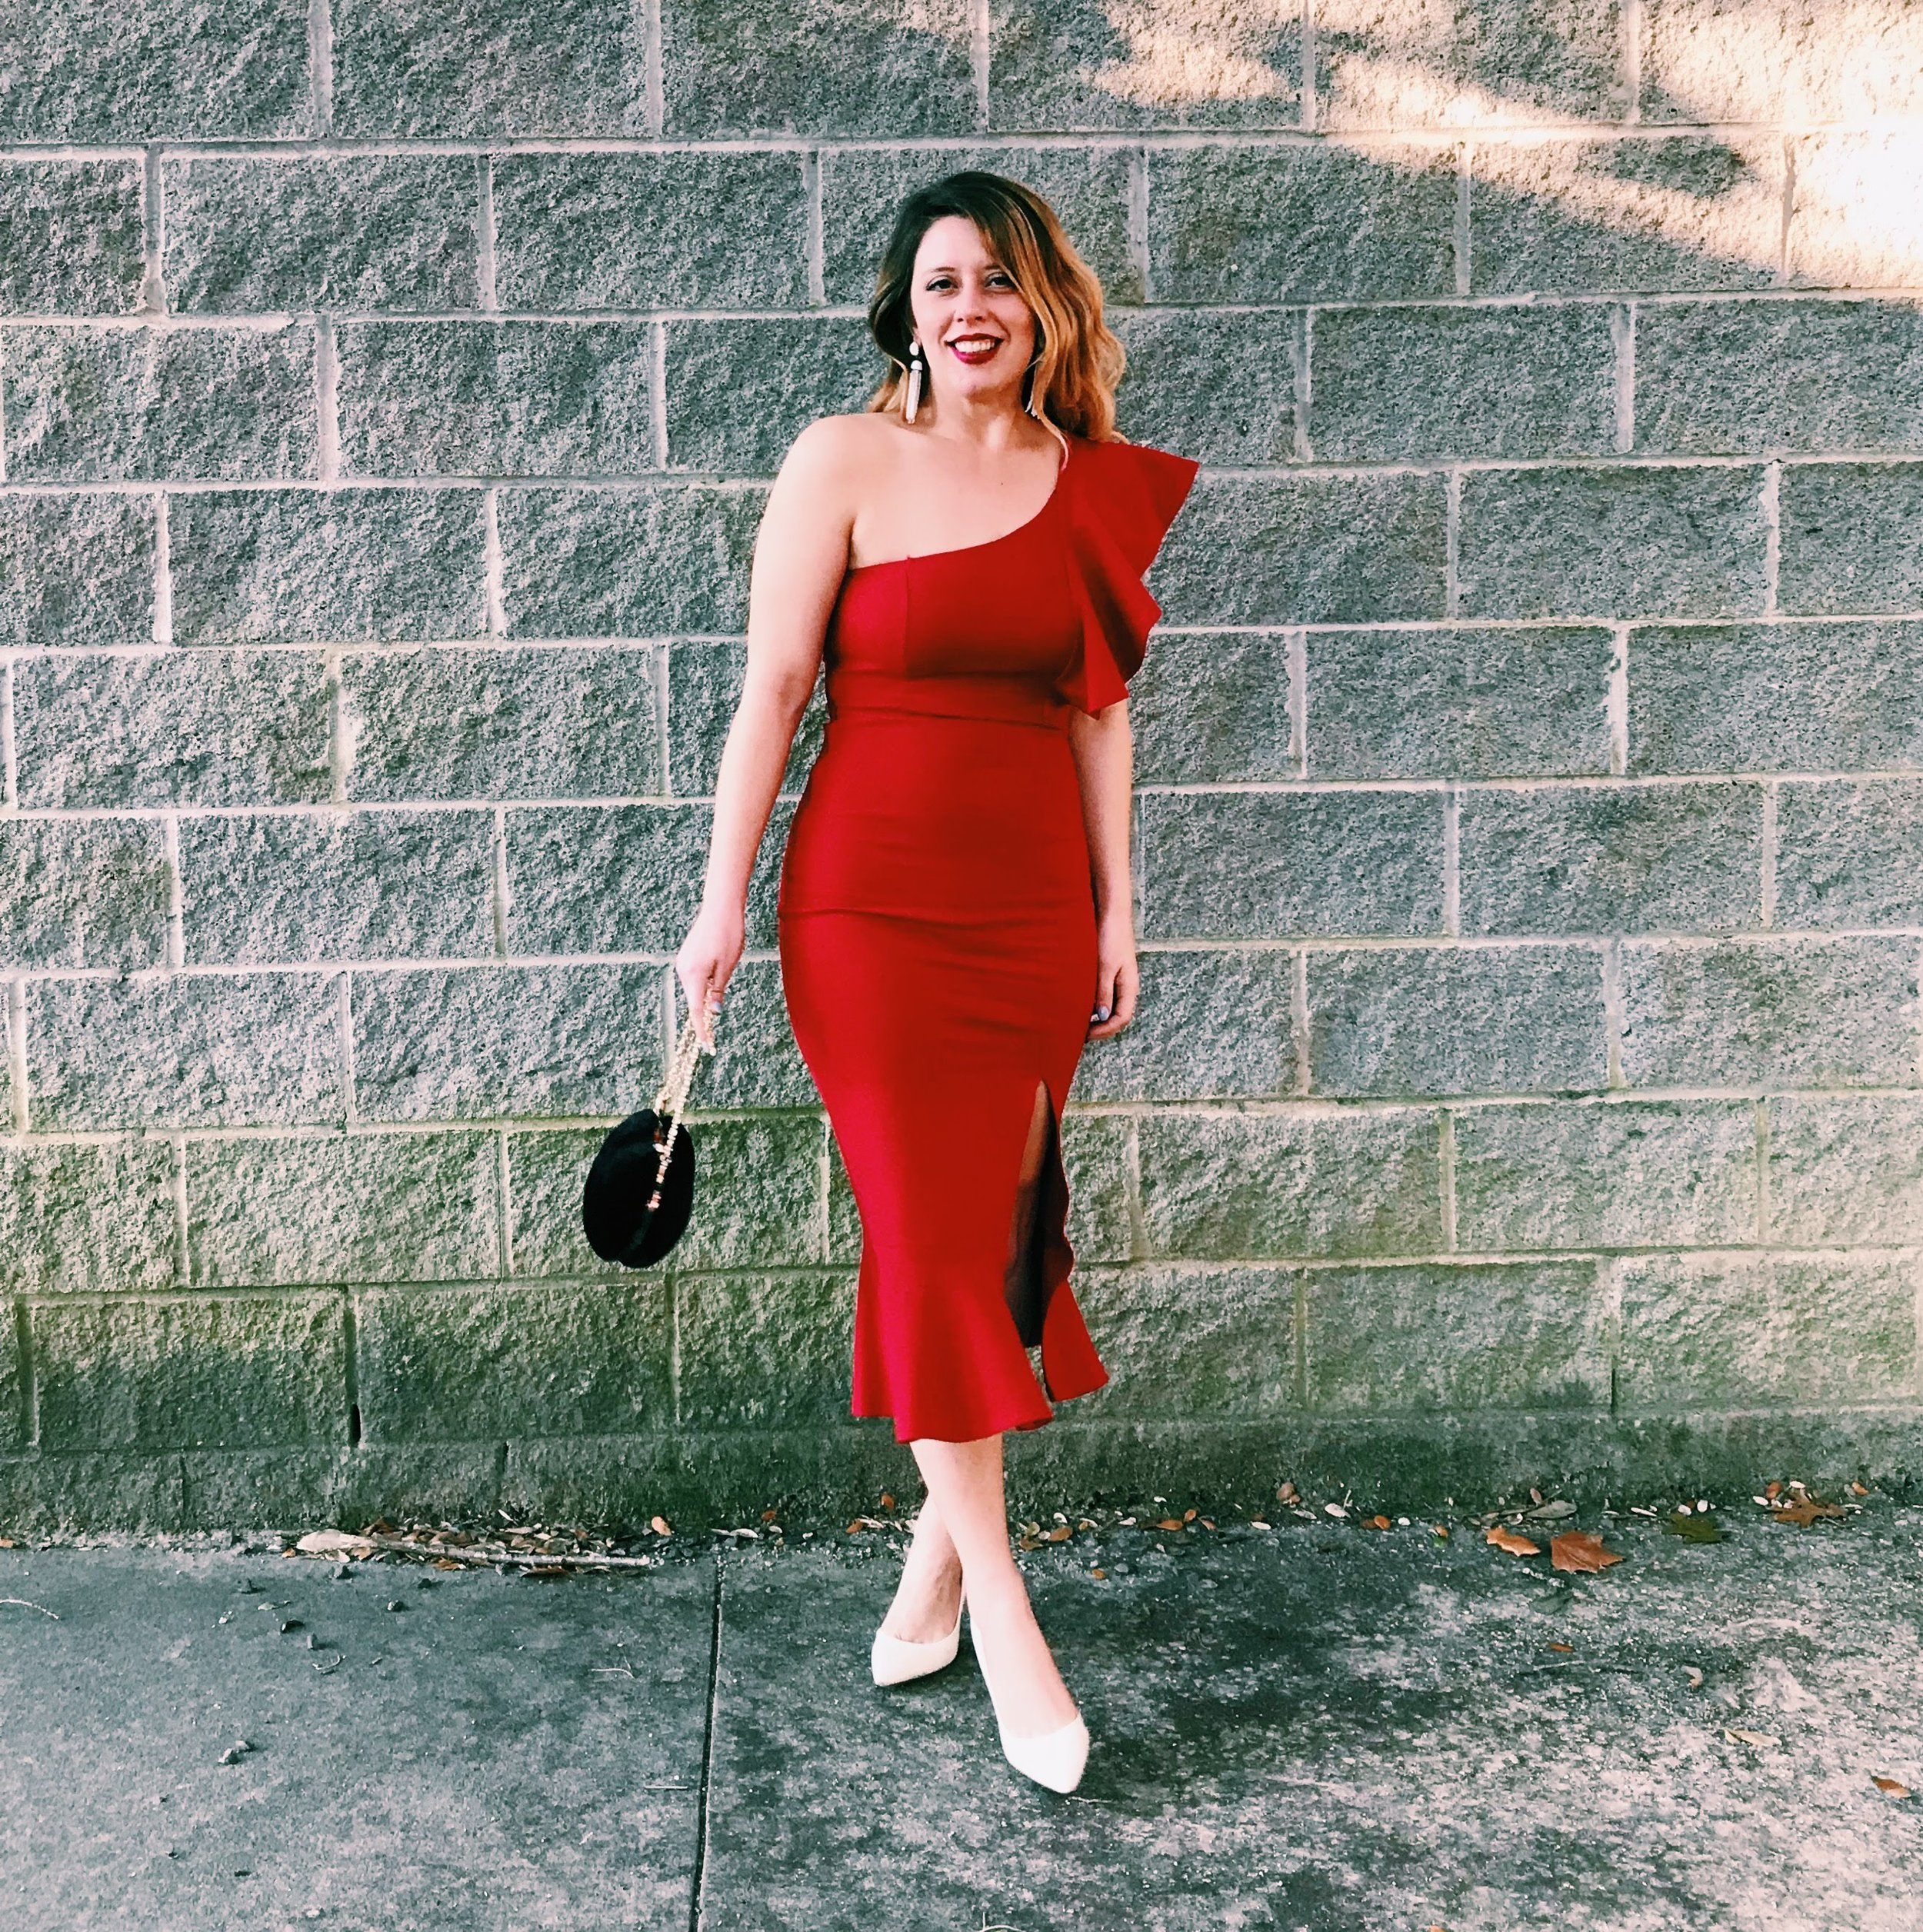 Three Heel Clicks - How to Go All Out Glam for Valentine's Day (11).jpg